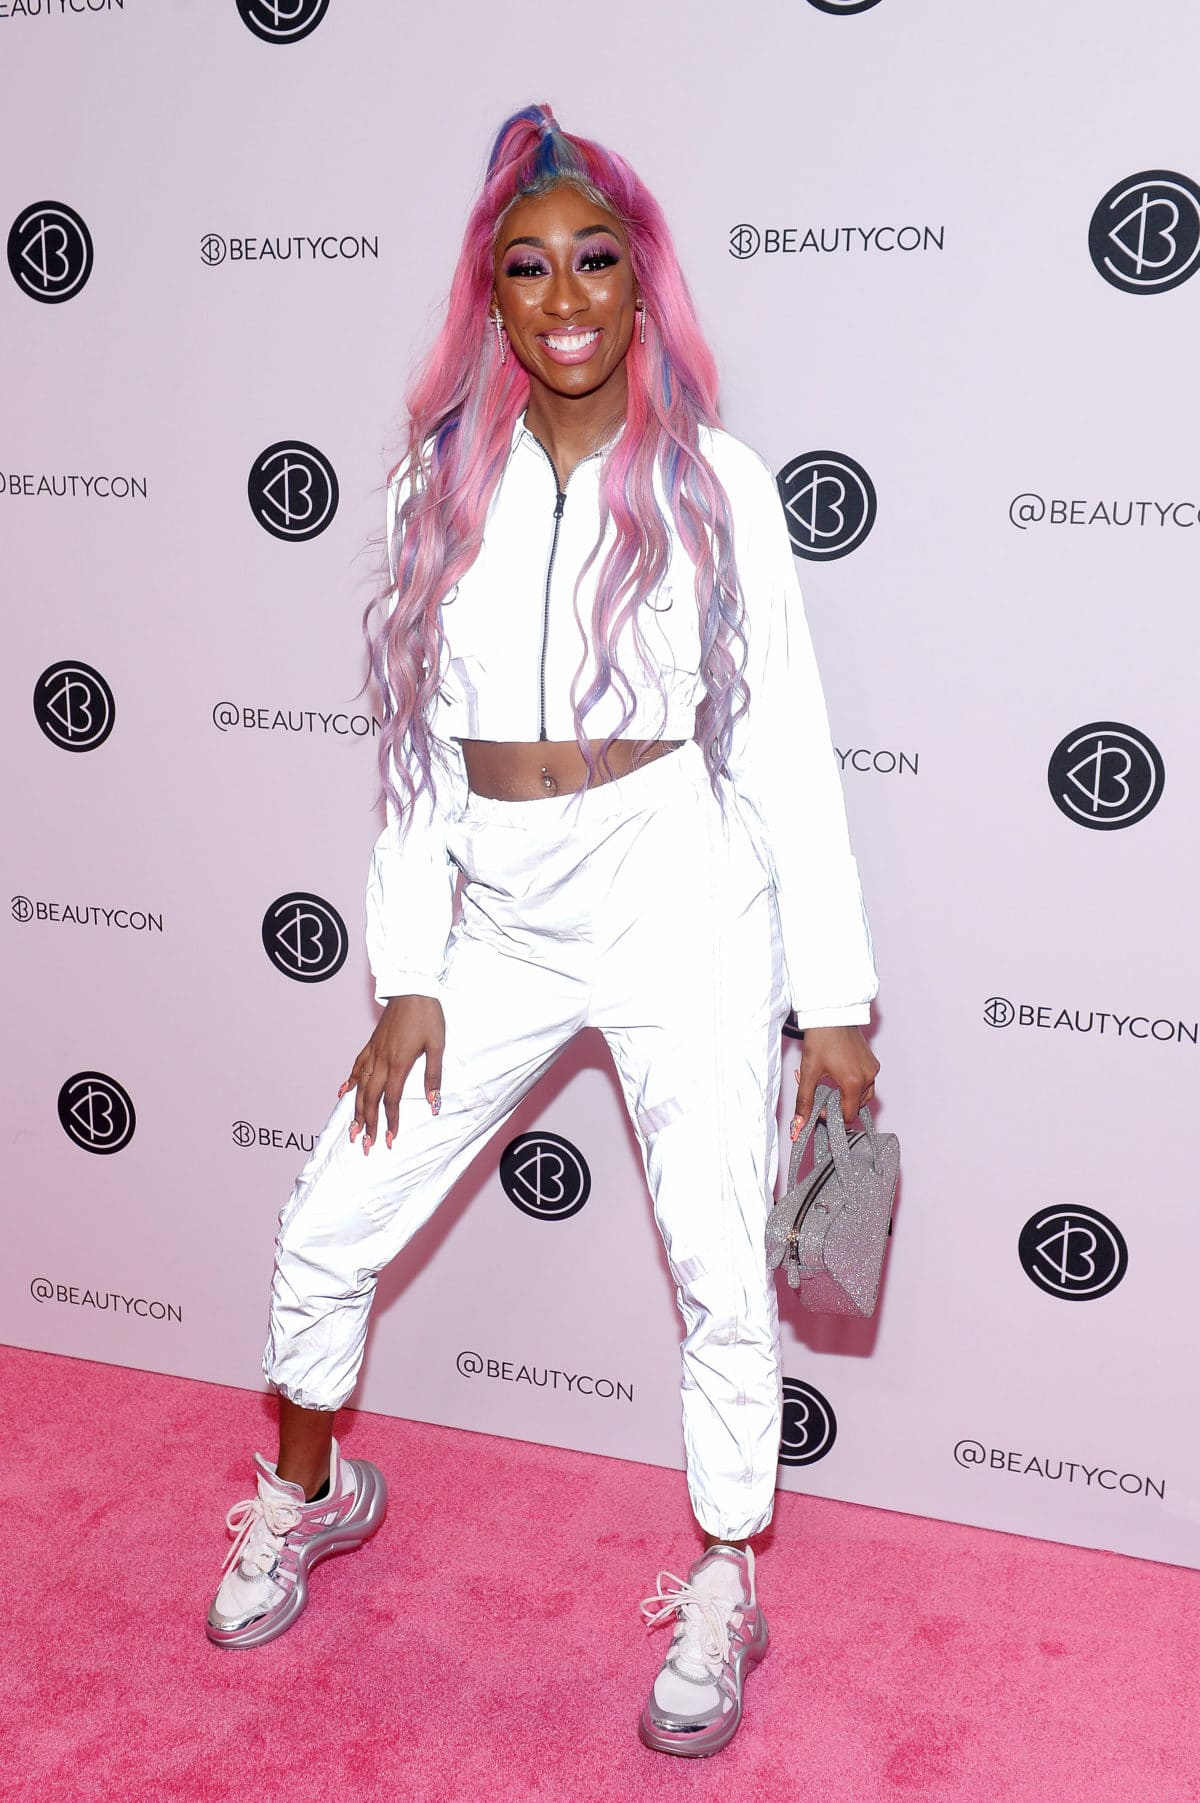 Image result for beautycon nyc 2019 getty